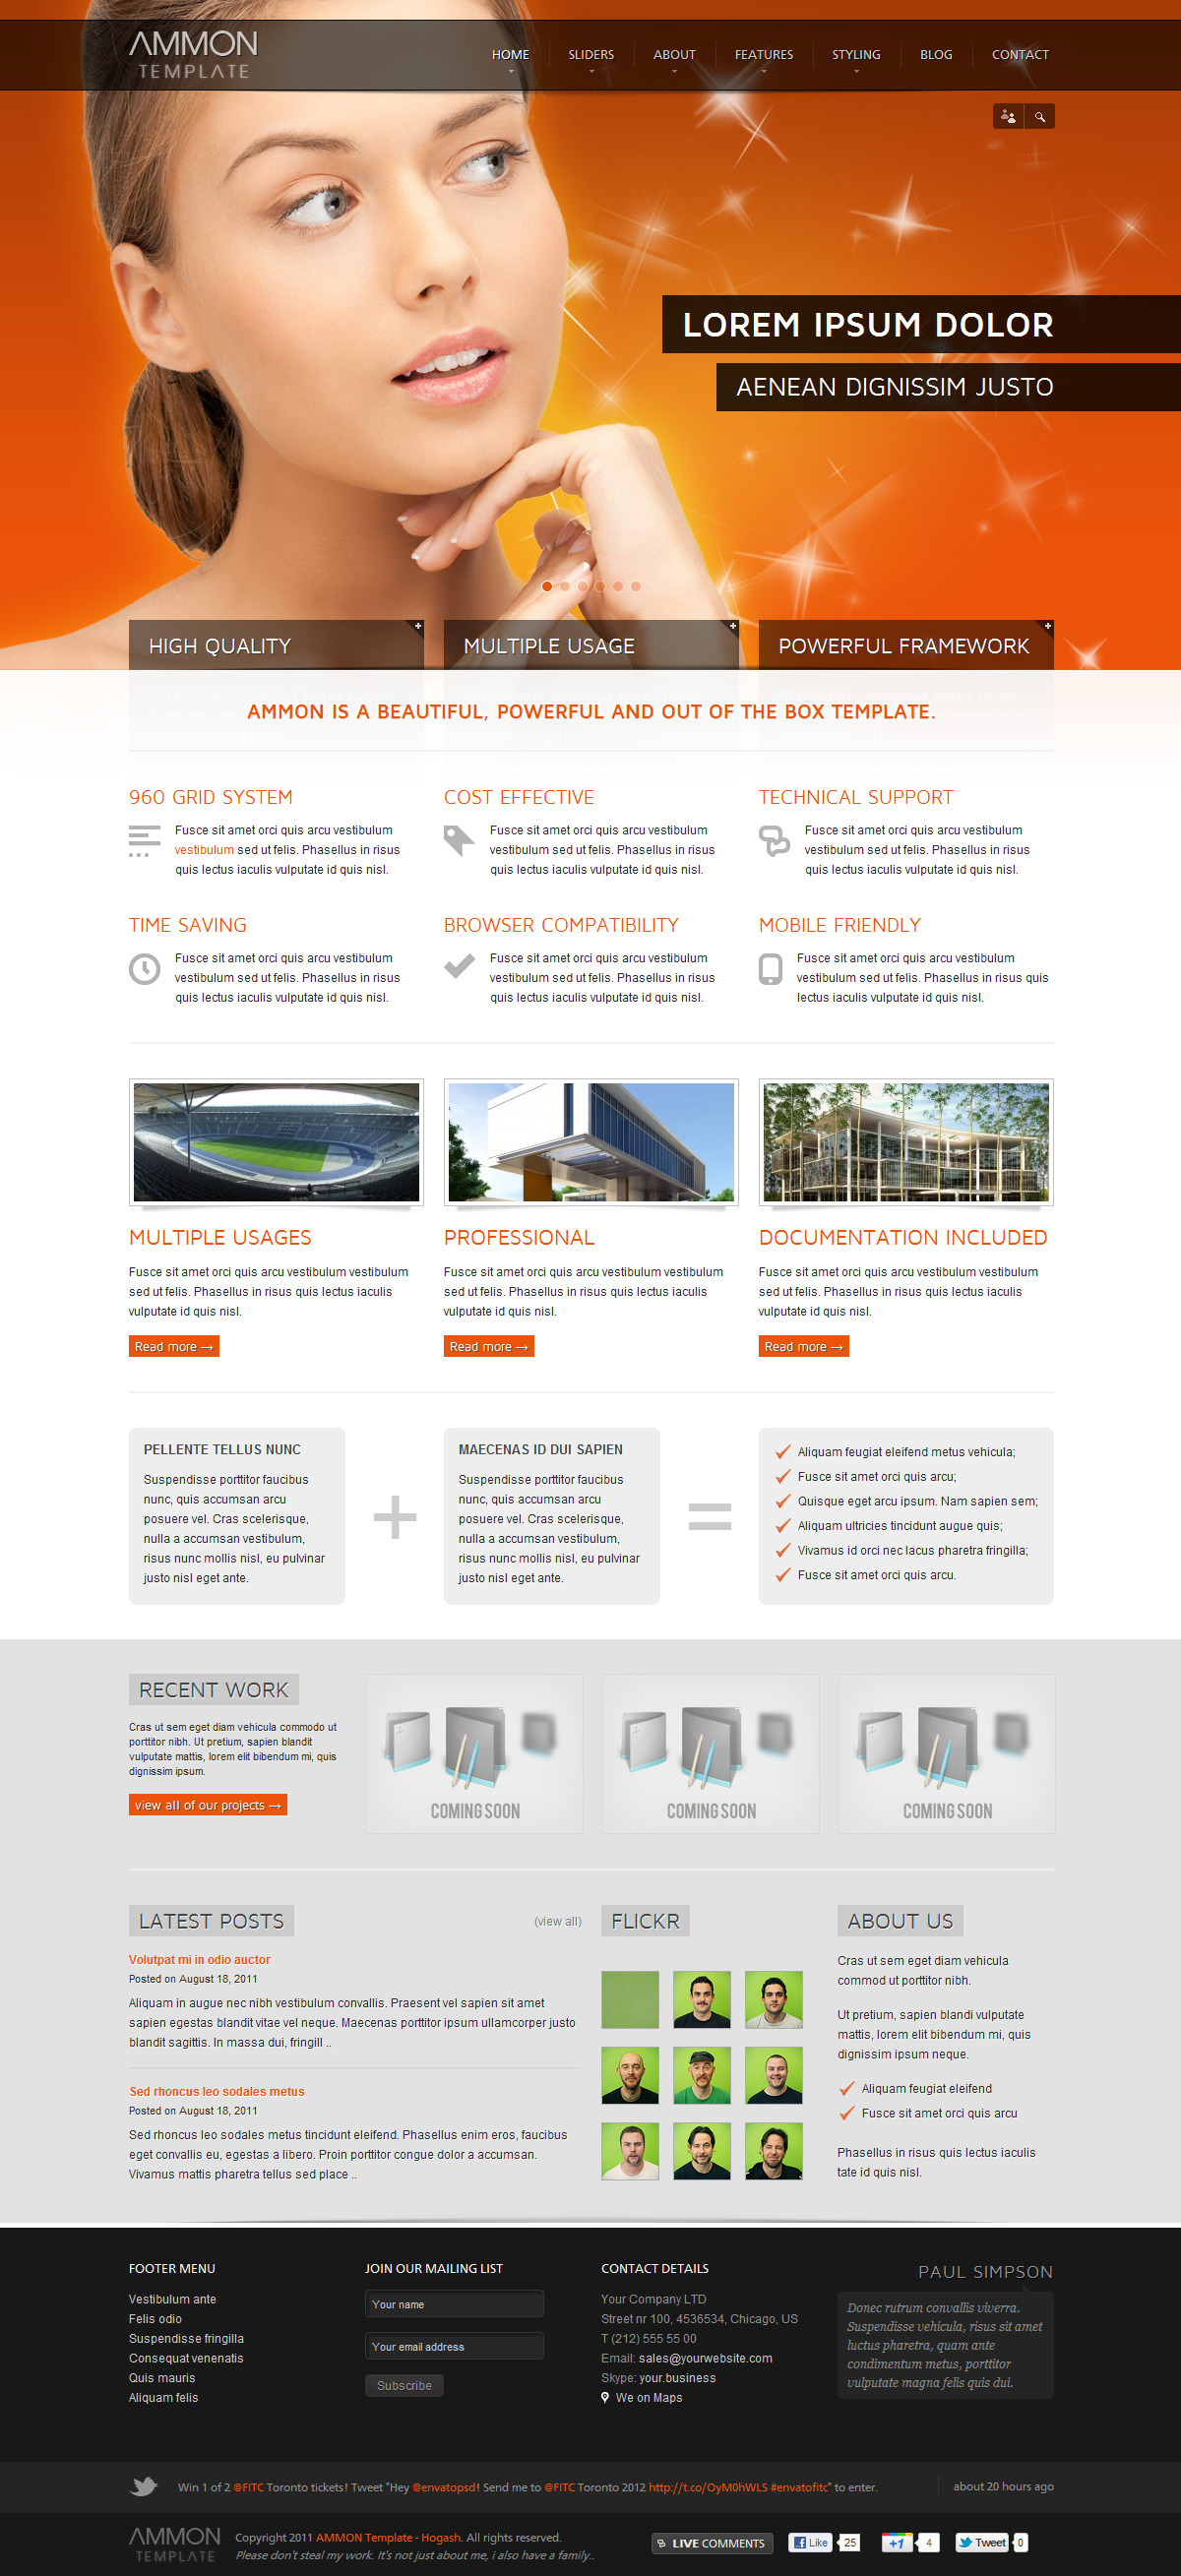 Ammon - Template for Joomla - GENERAL PAGE - HOMEPAGE - FULL SLIDER 1